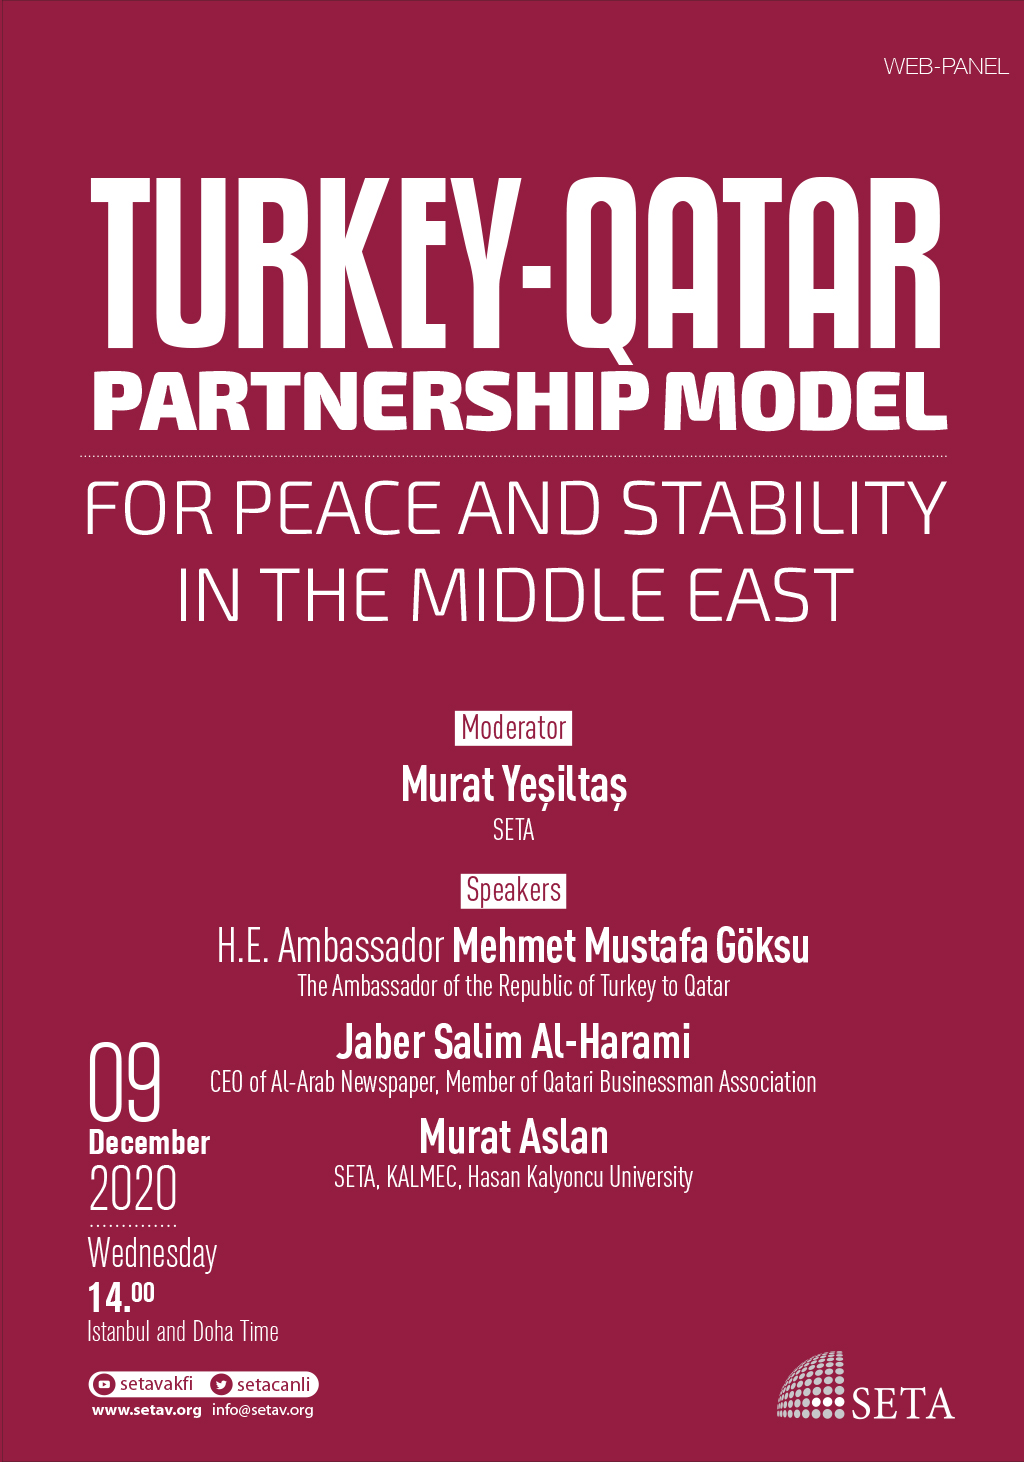 Web Panel: Turkey-Qatar Partnership Model | For Peace and Stability in the Middle East